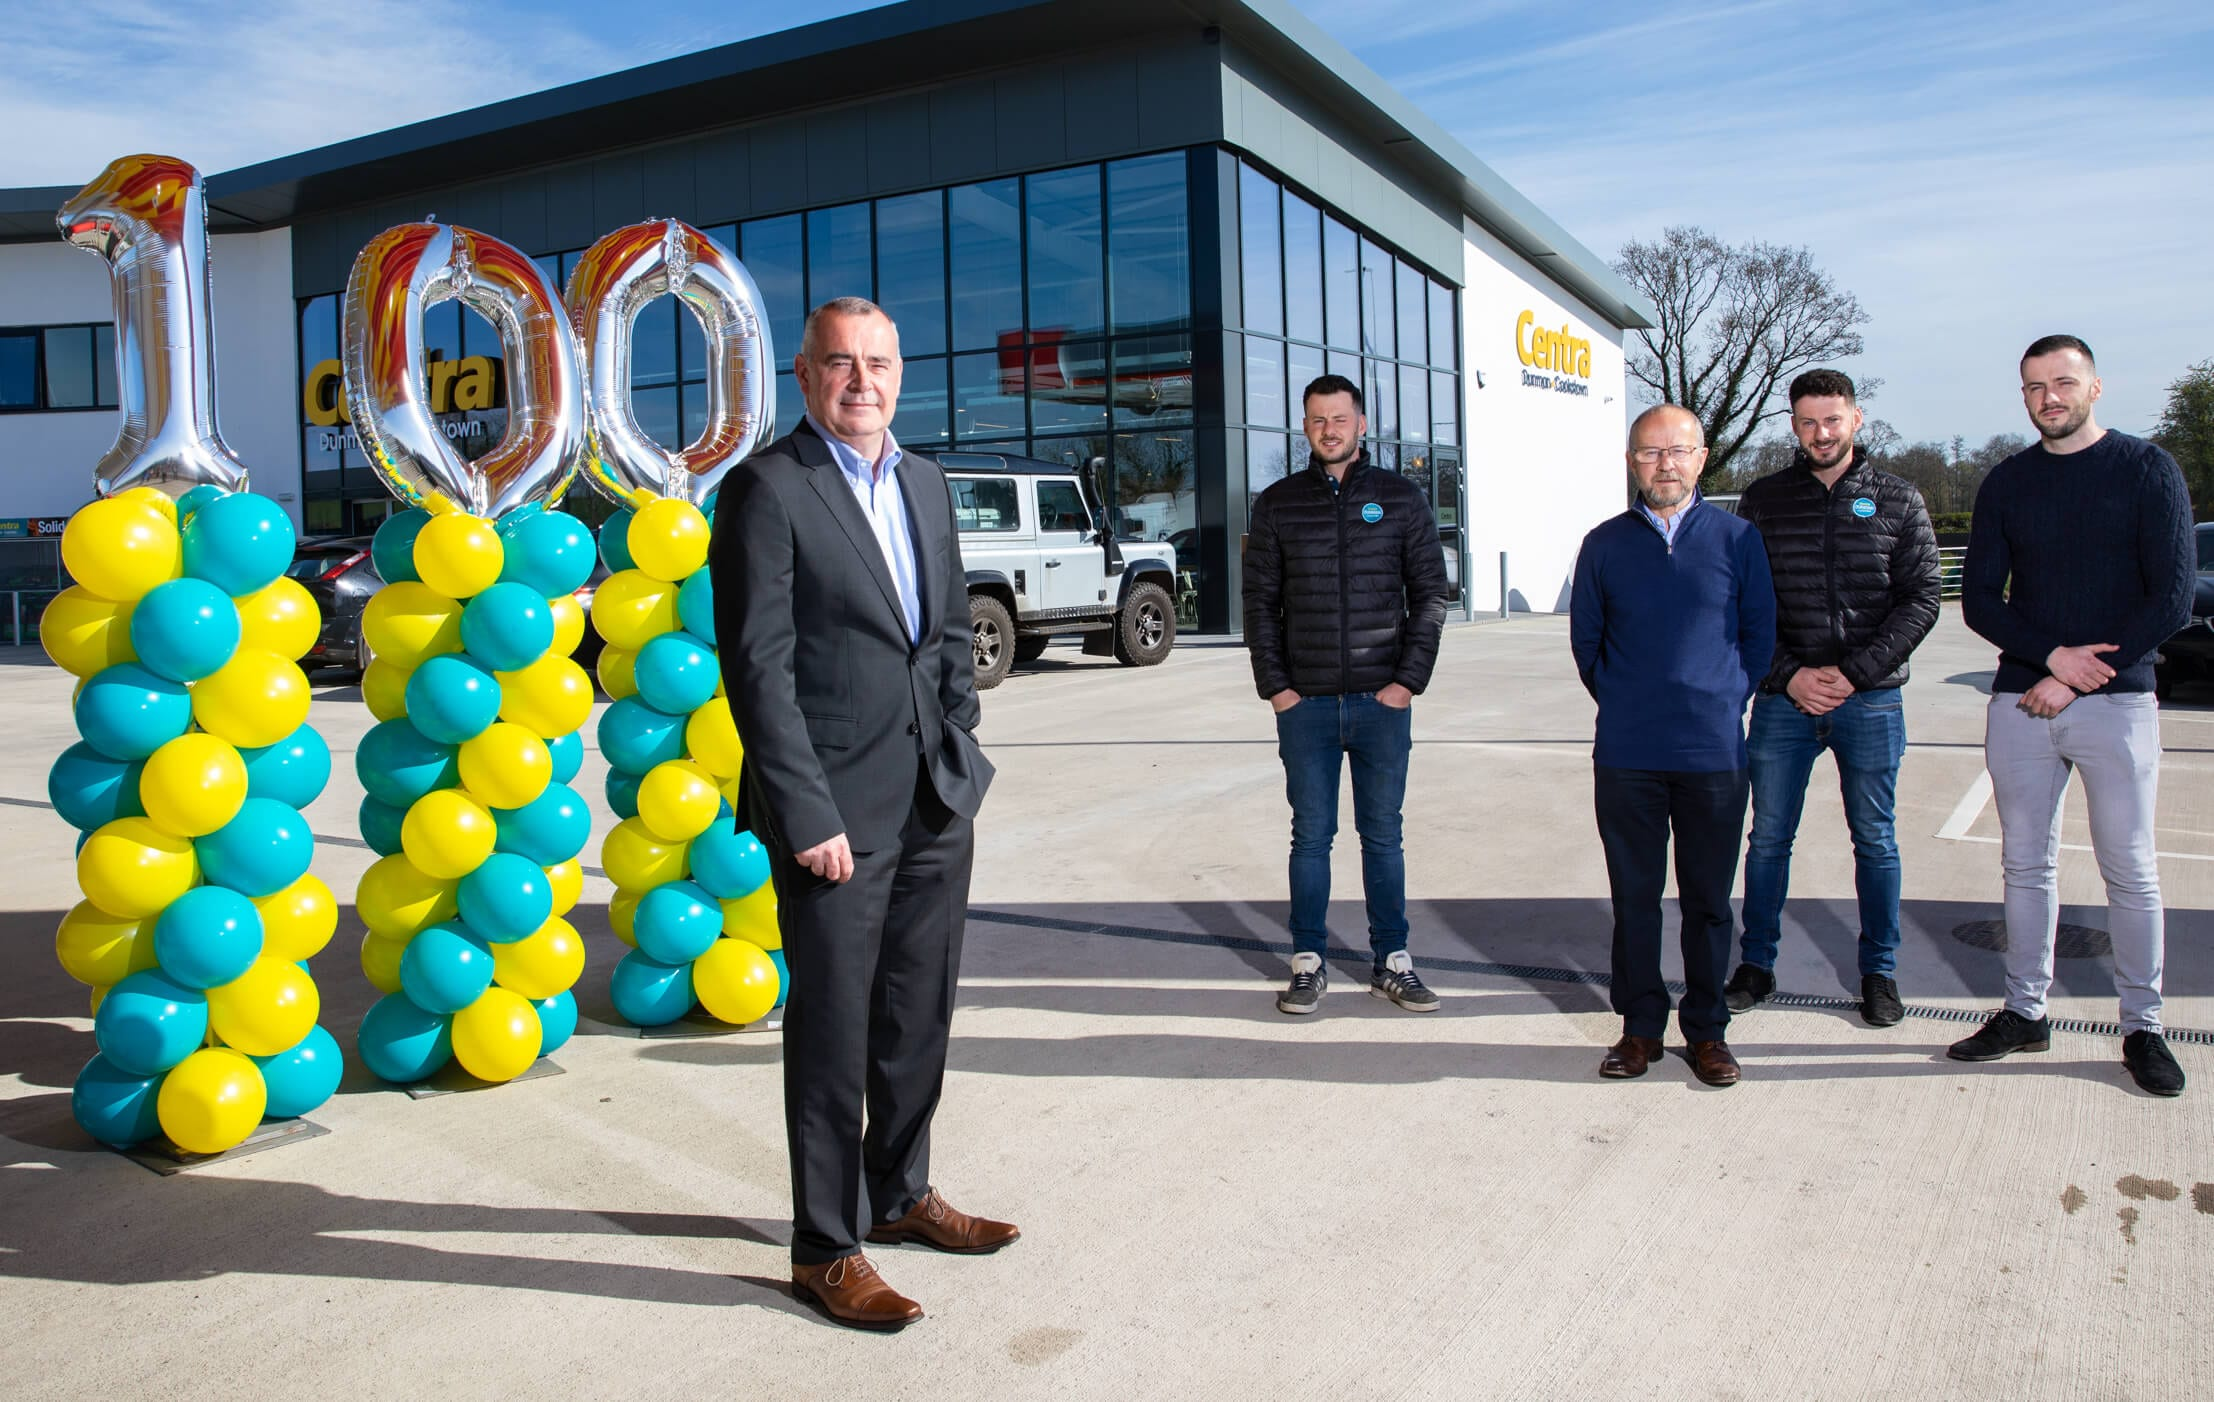 Centra 100th Store in Northern Ireland